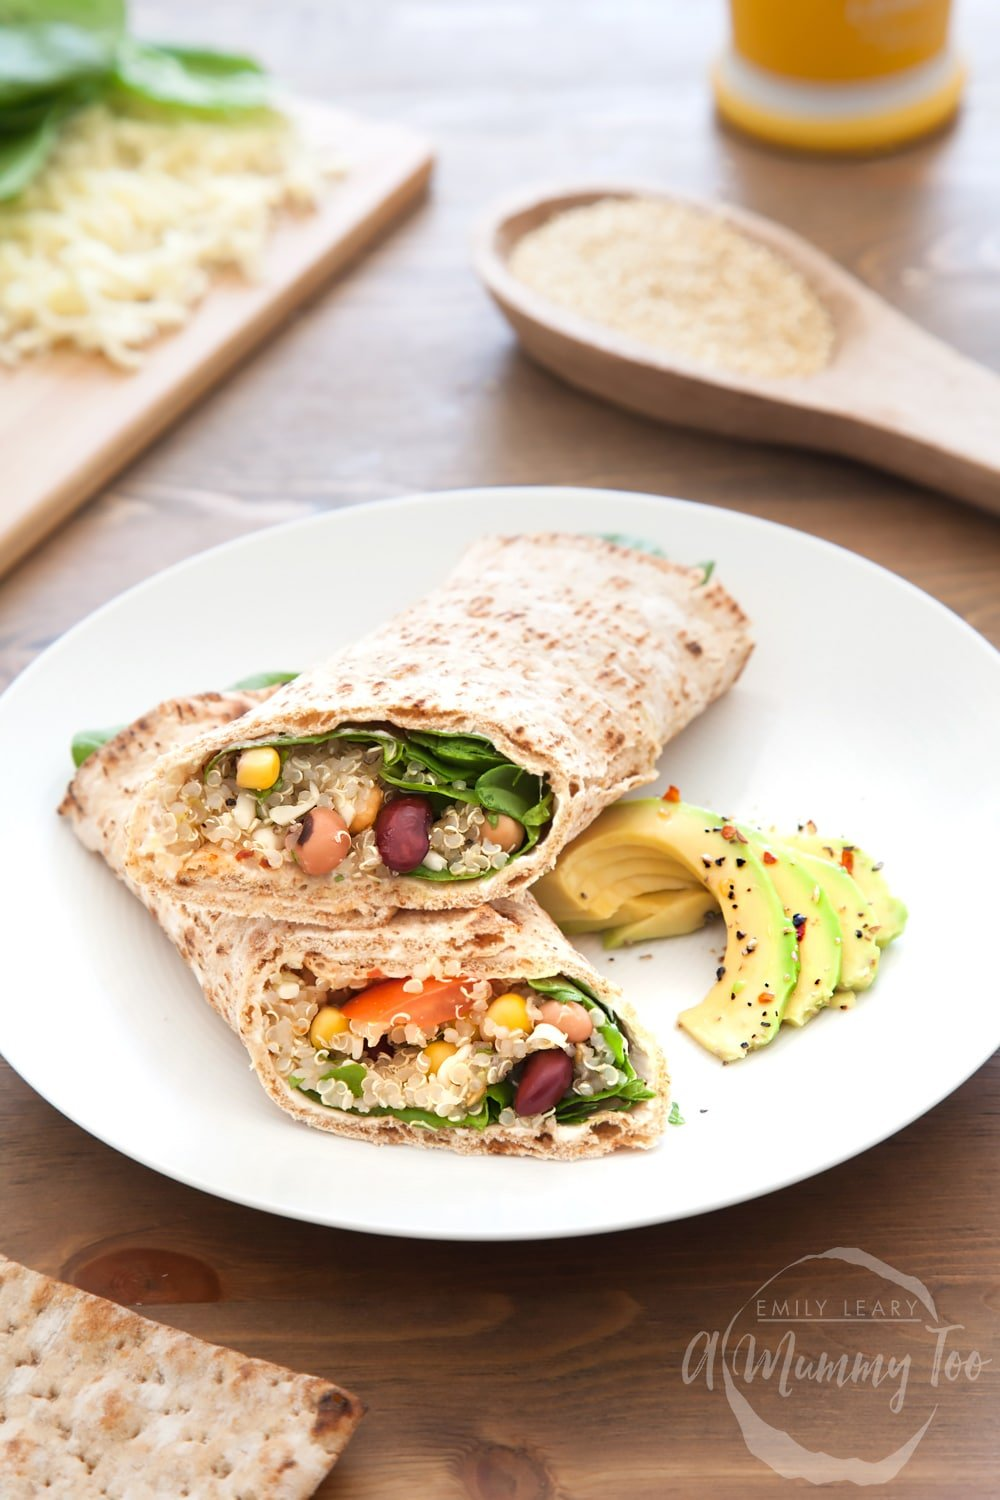 These spicy quinoa and bean protein wrap have just the right amount of spice